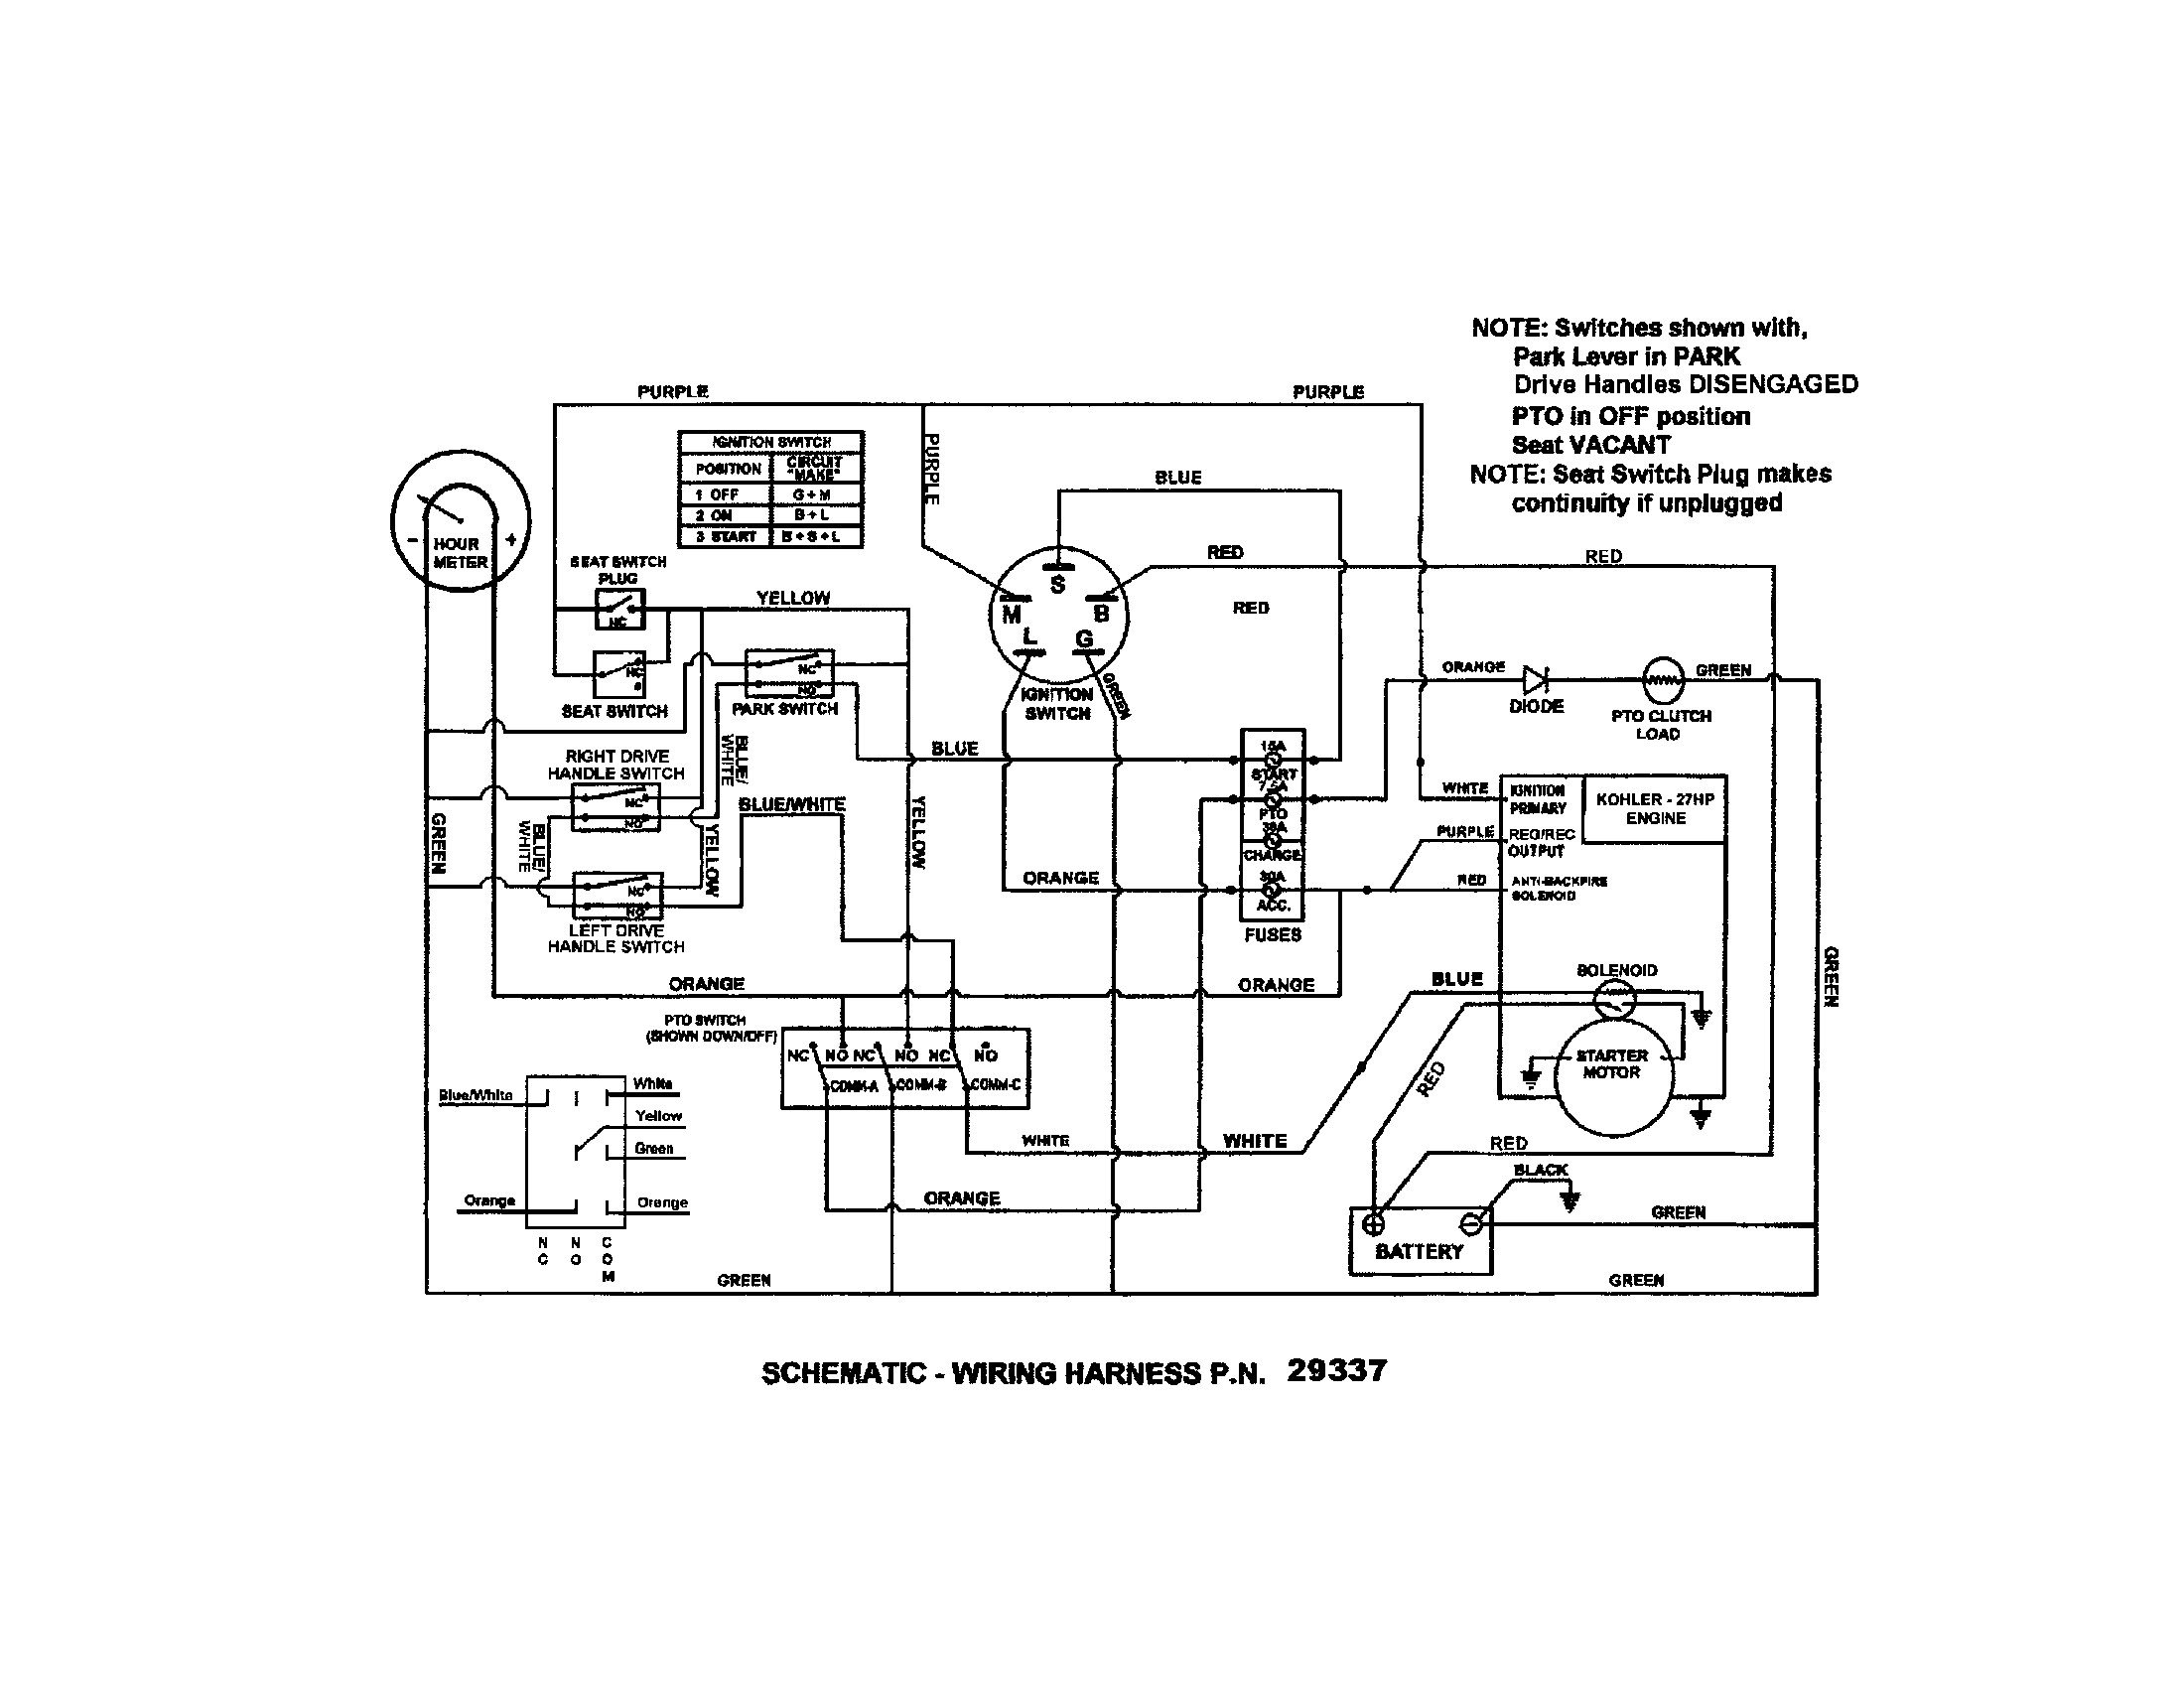 Kohler Ignition Switch Wiring Diagram New Wiring Diagram For Kohler - Kohler Ignition Switch Wiring Diagram